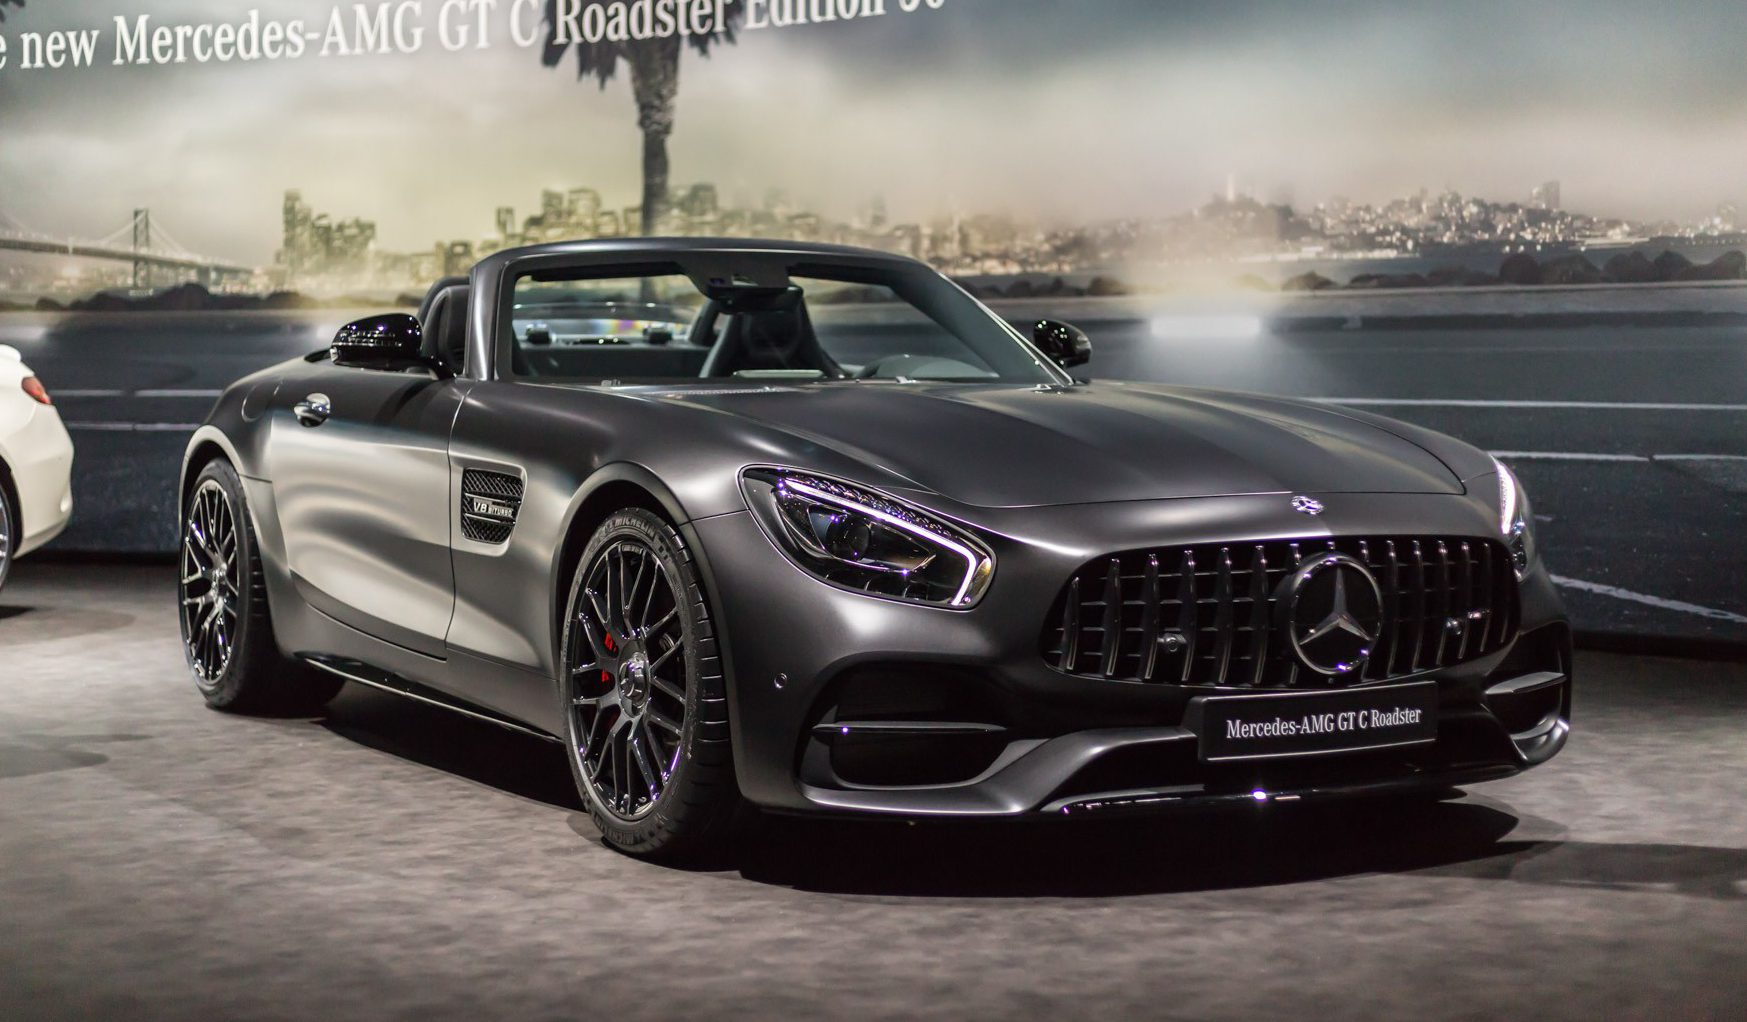 https://storage.googleapis.com/gtspirit/uploads/2017/03/Mercedes_Benz_AMG_GT_C_Roadster_Edition_50_Geneva17-10-e1488845752721.jpg